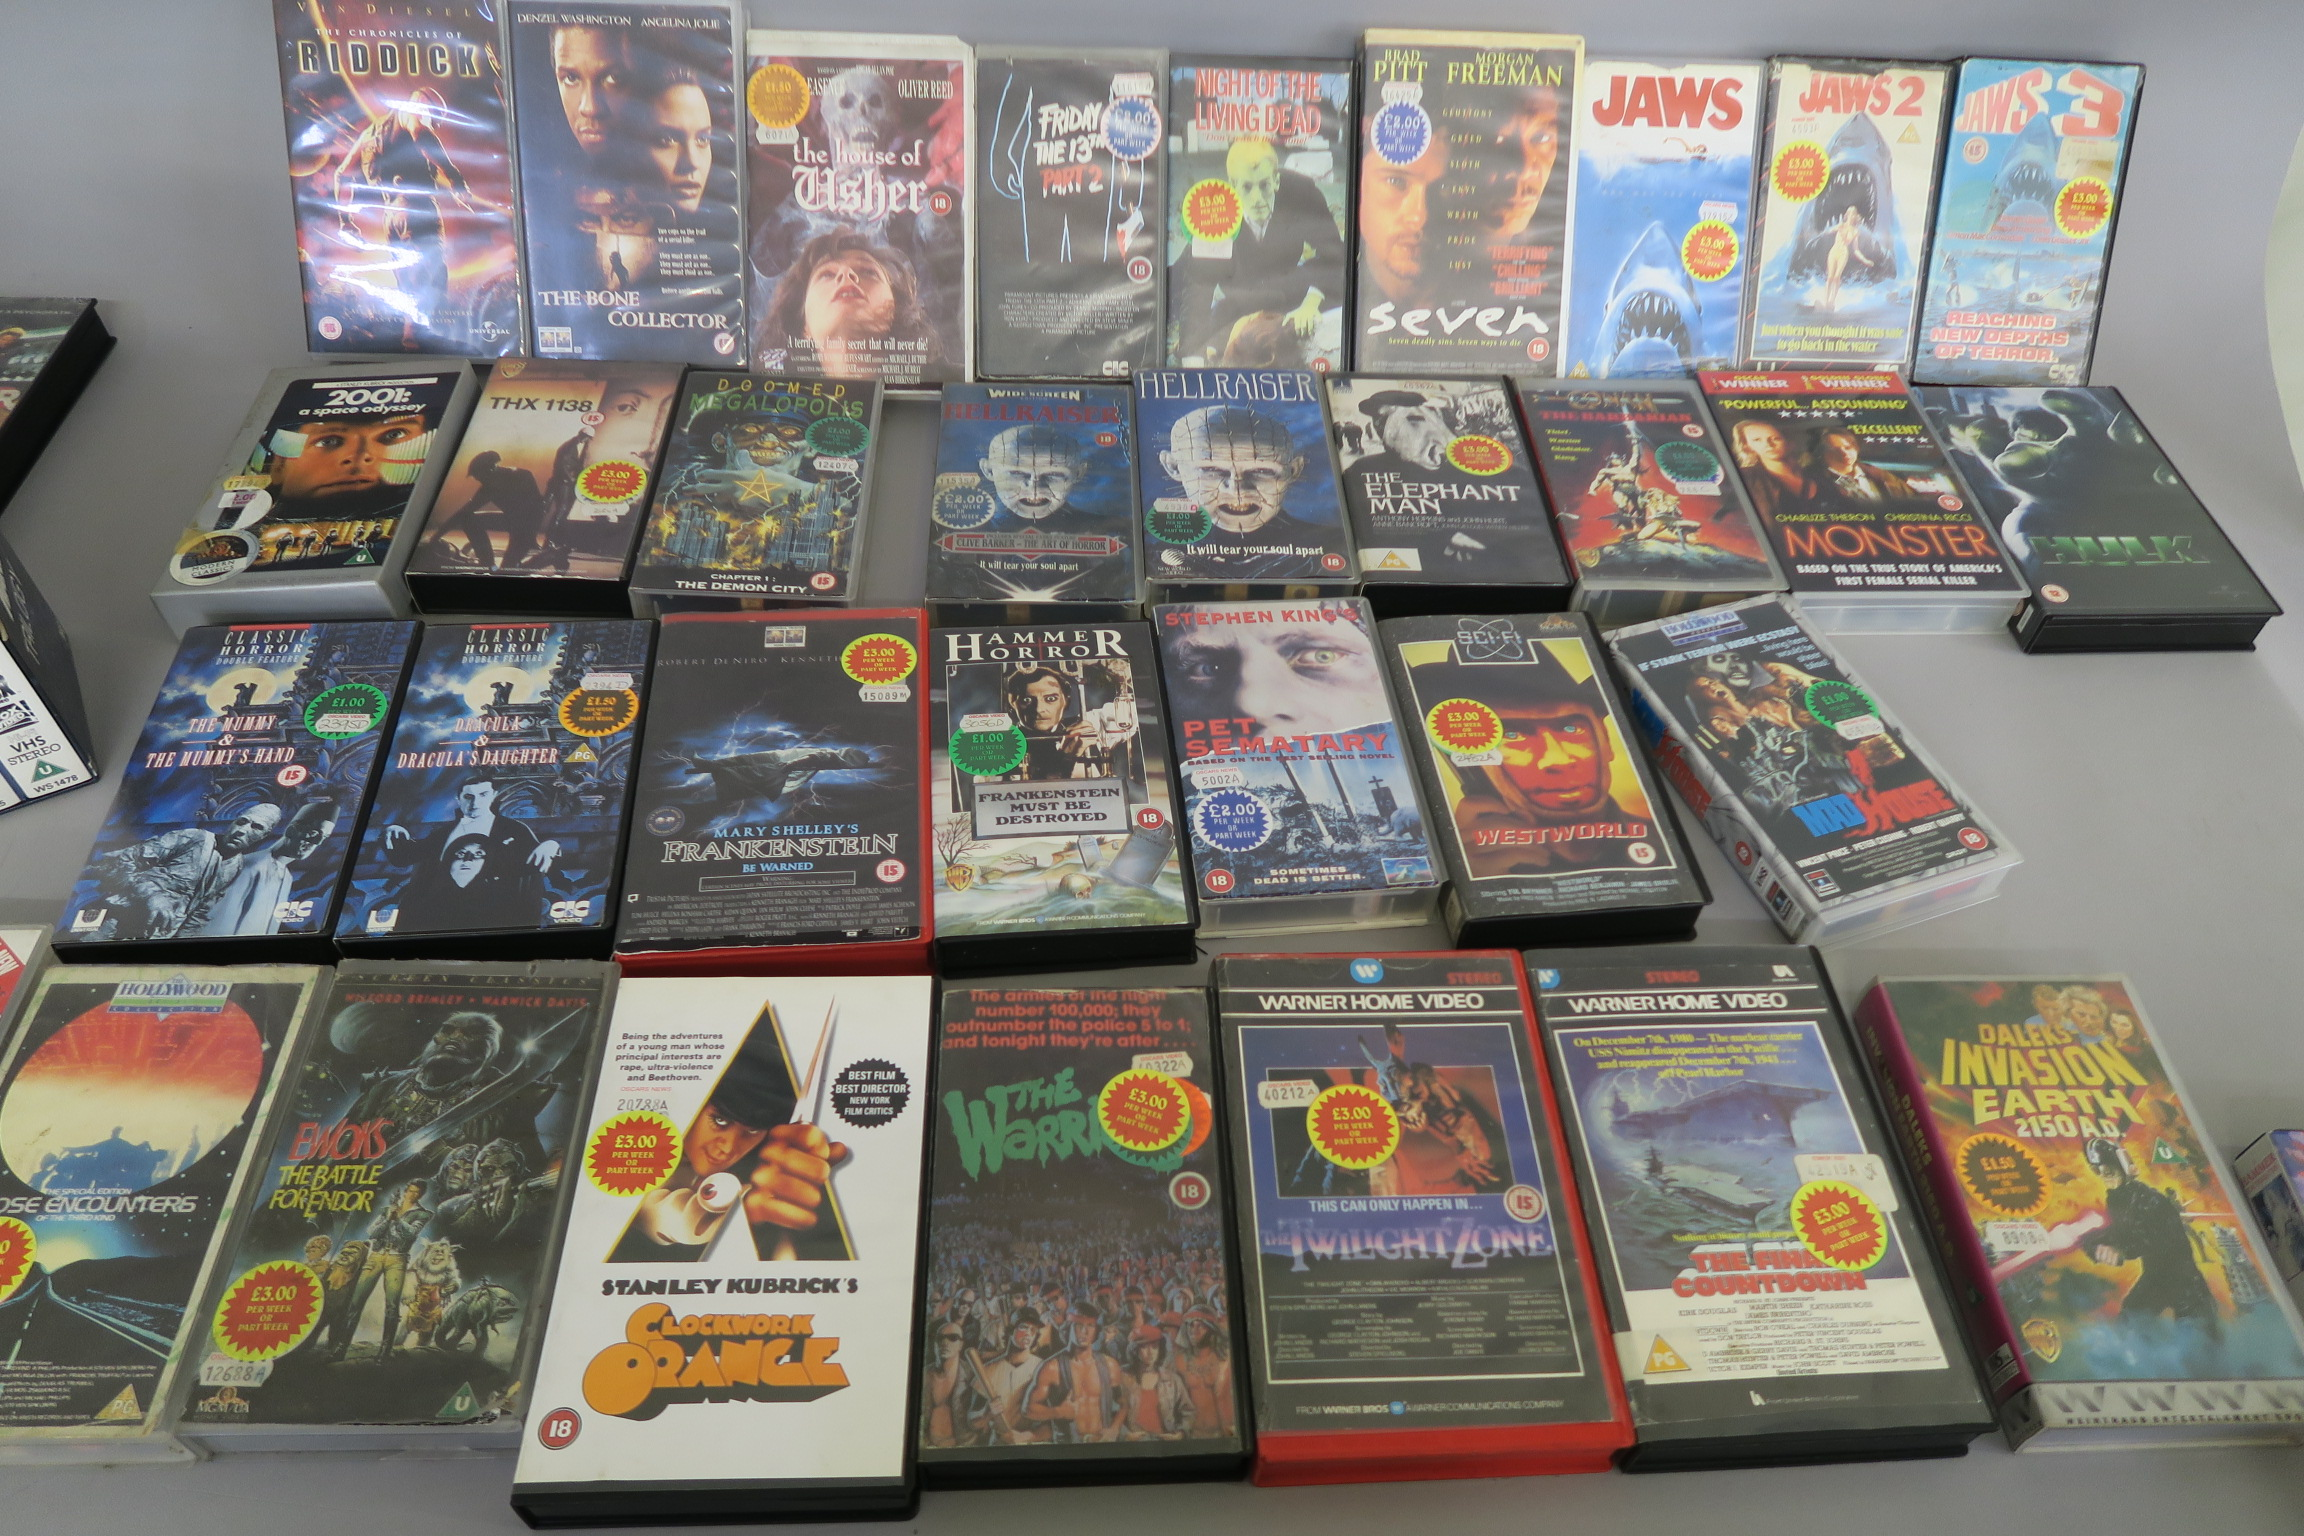 Lot 31 - Horror and Sci Fi video collection directly from a closed video shop in the 1990s and offered for